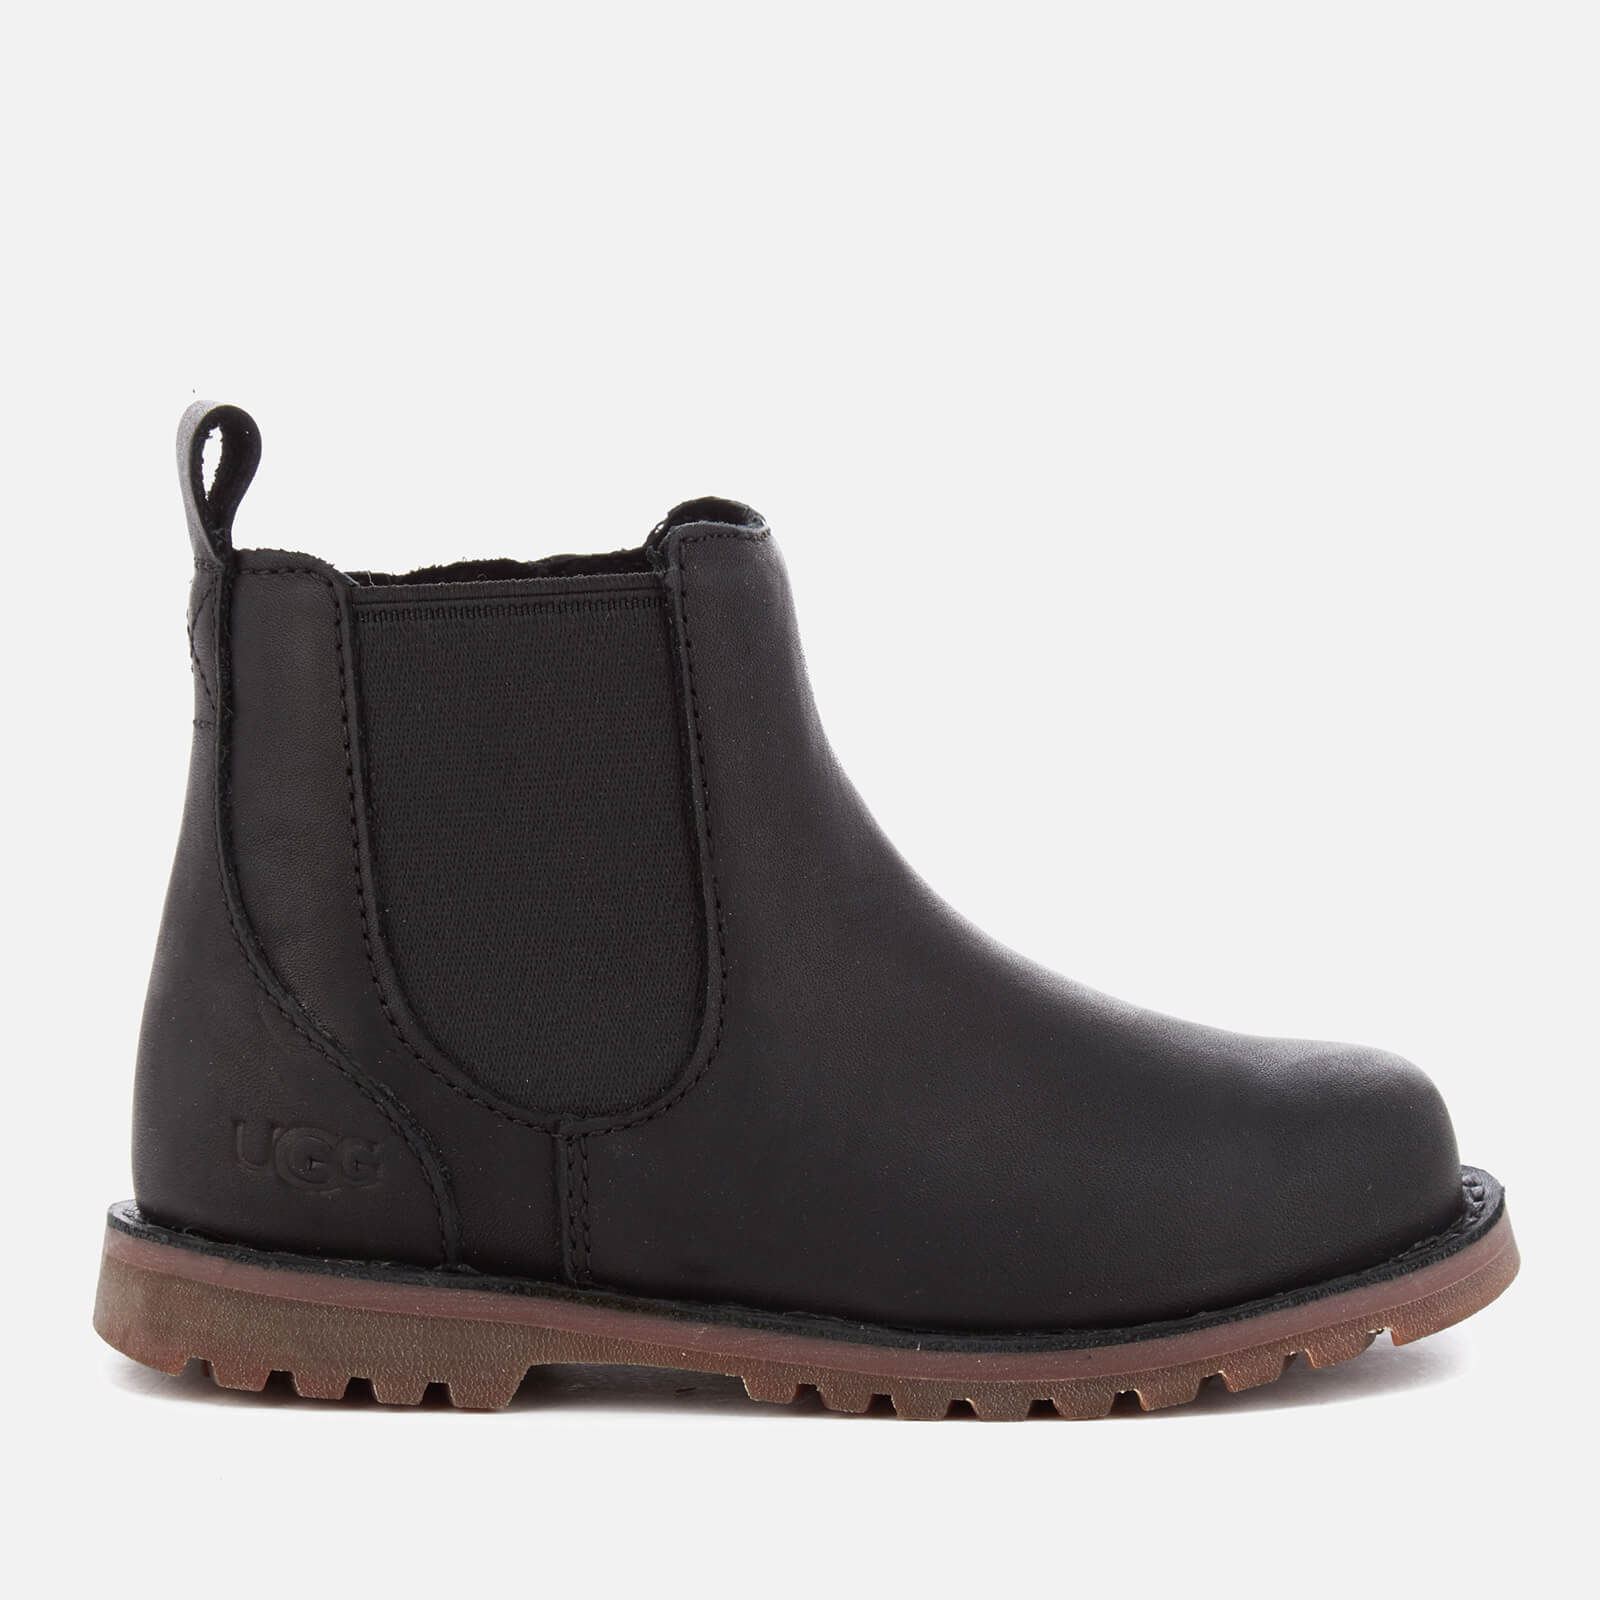 7f254a8ec04 UGG Toddlers' Callum Suede Chelsea Boots - Black